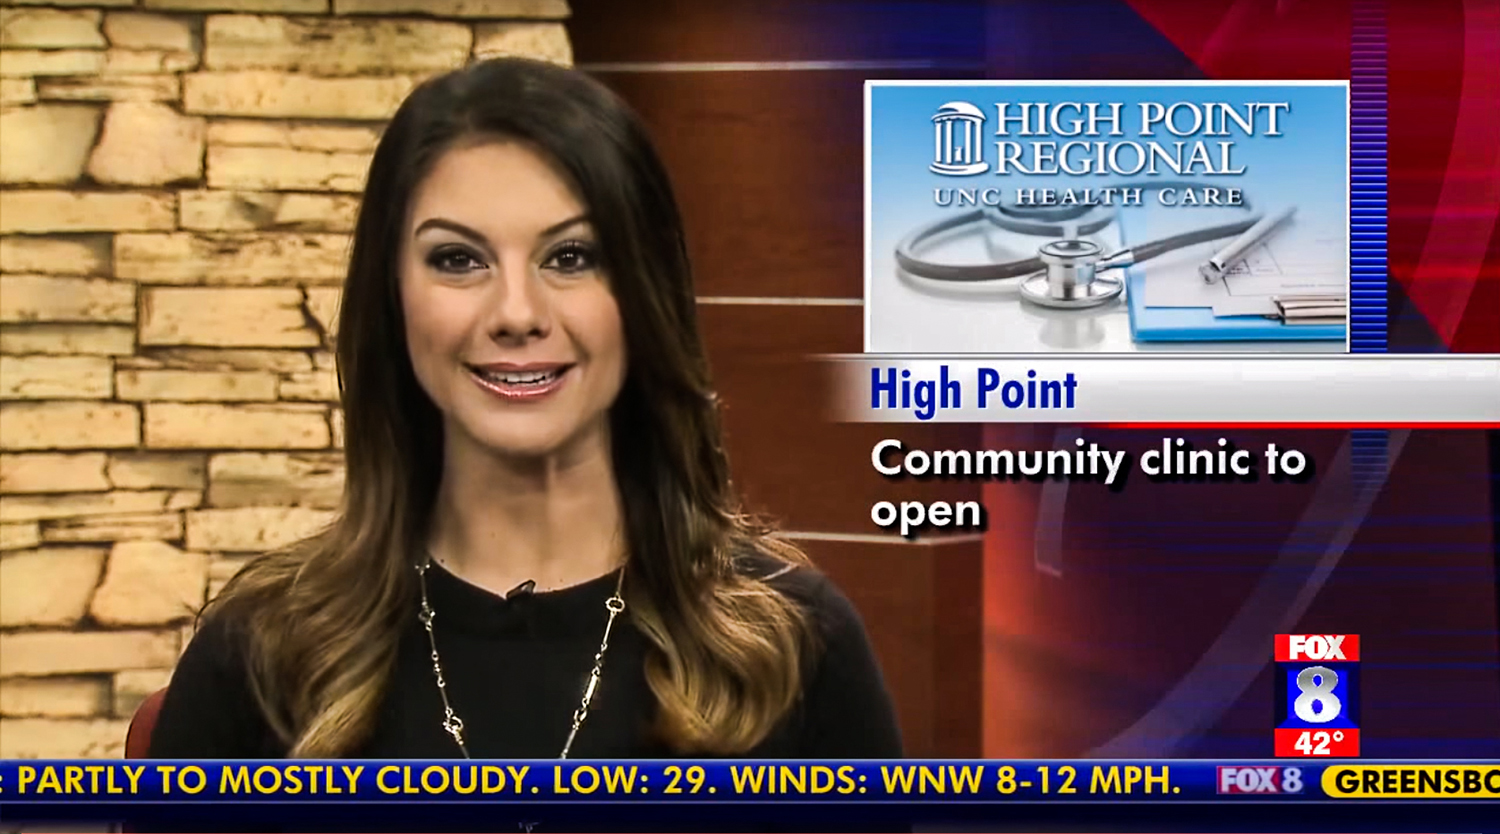 Fox 8 covered HPU's Community Rehabilitation Clinic announcement on Wednesday.